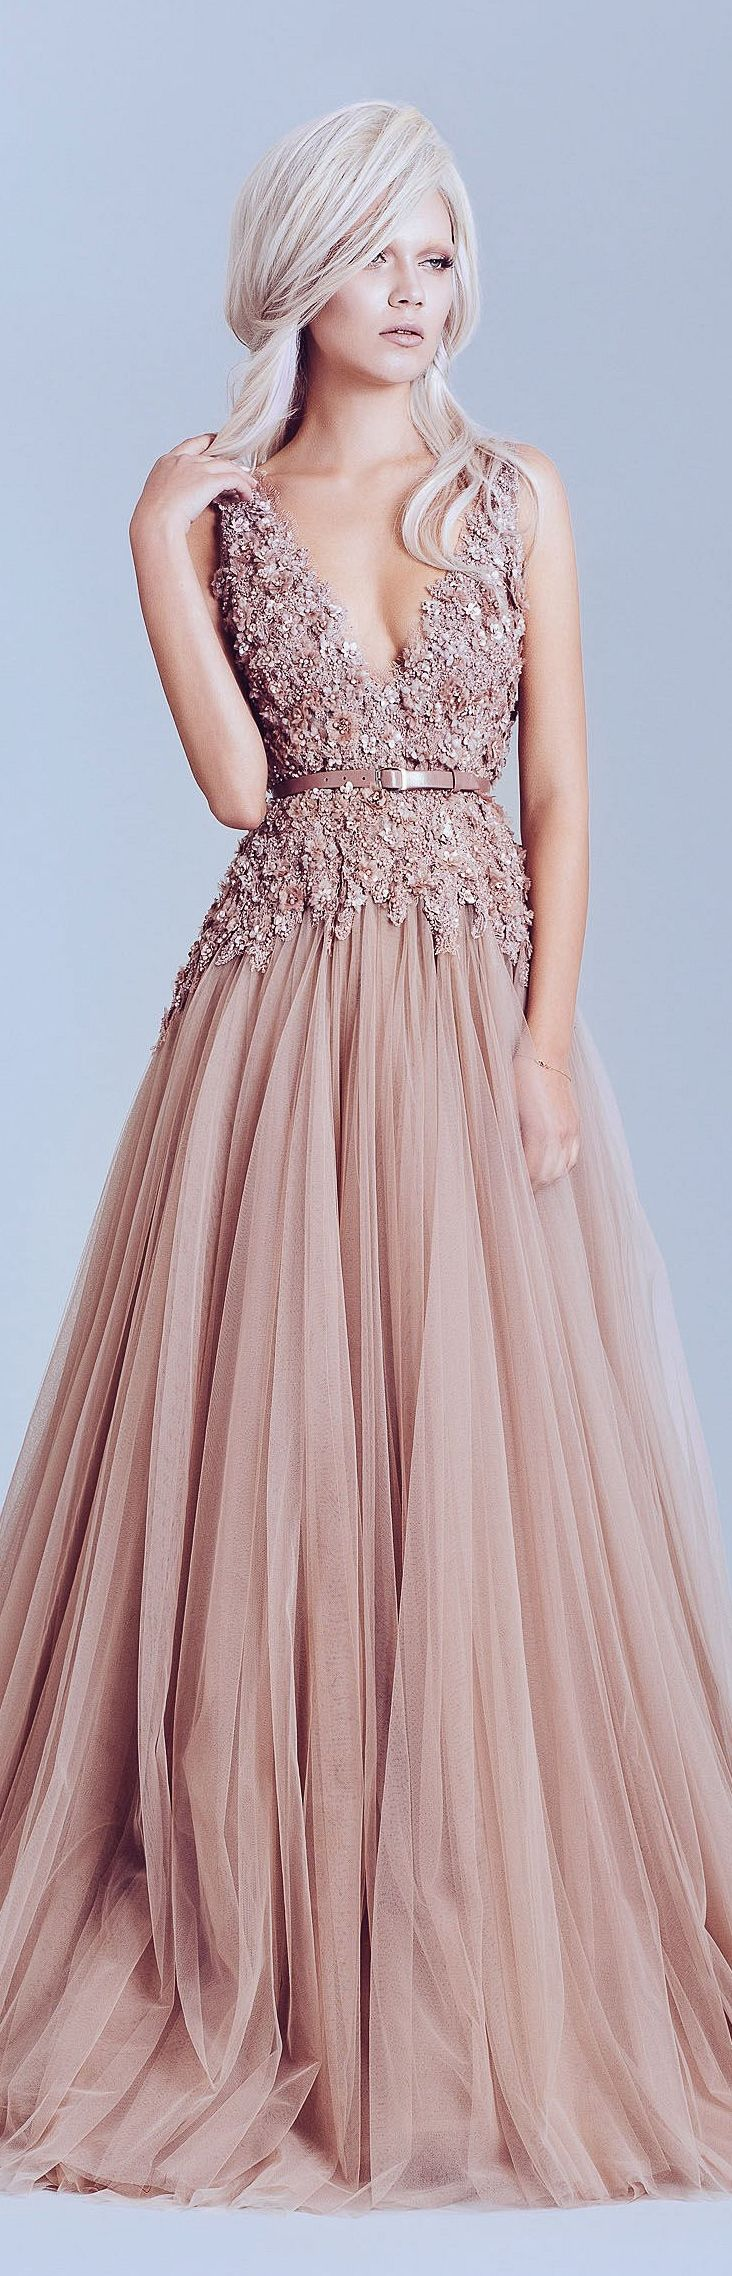 31 best Dresses images on Pinterest | Bridesmaids, Evening gowns and ...